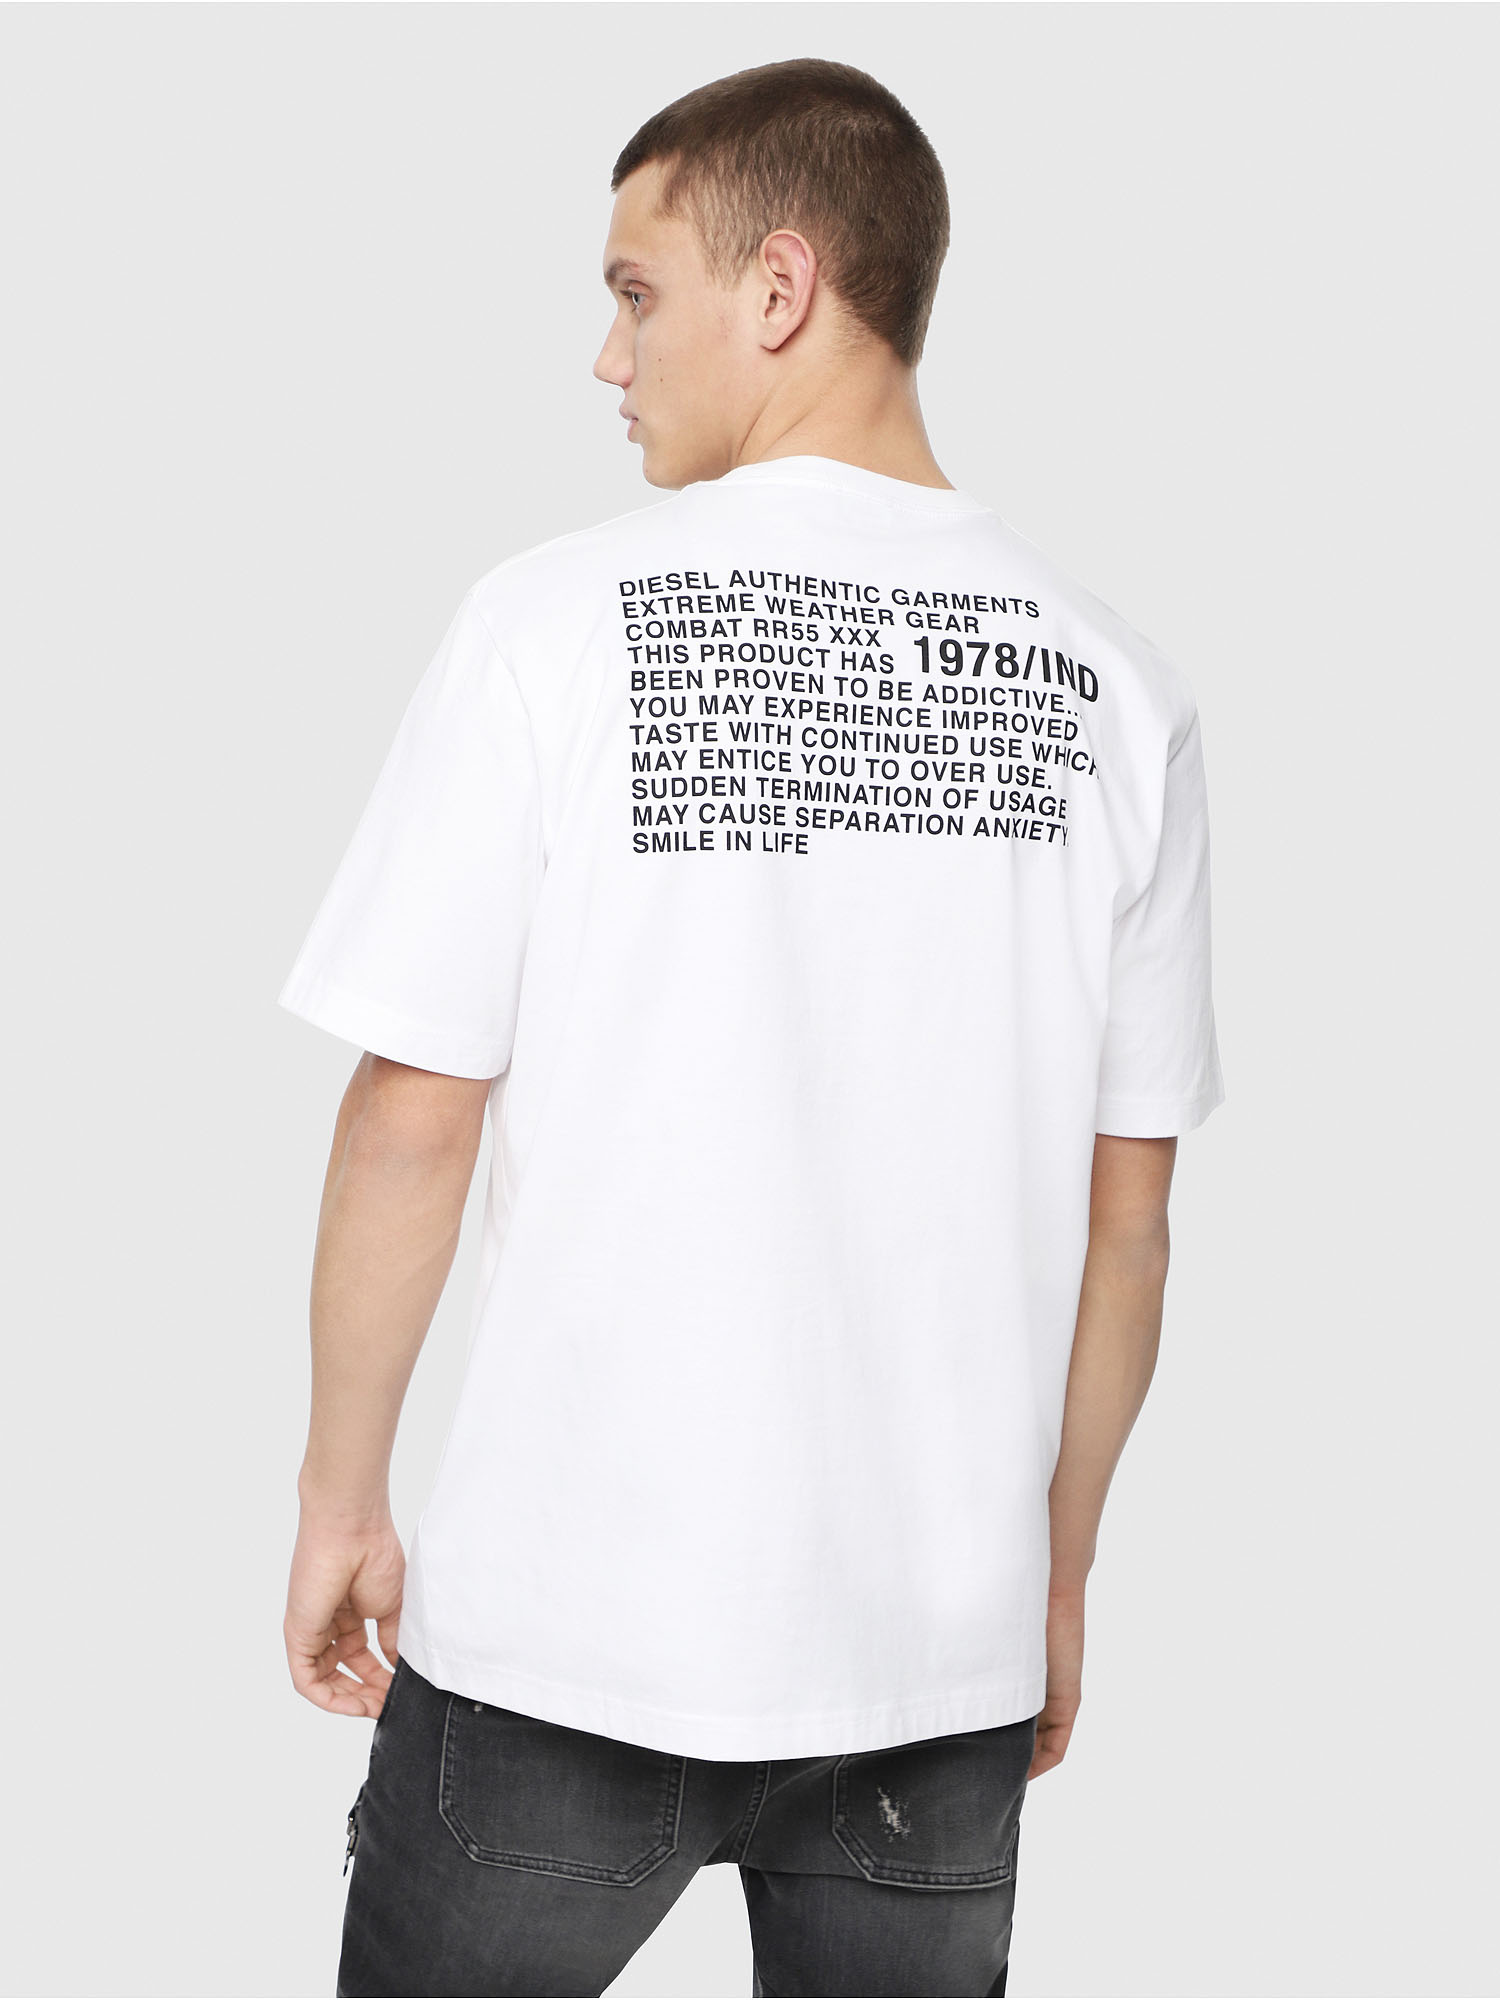 Diesel - T-JUST-Y1,  - T-Shirts - Image 2